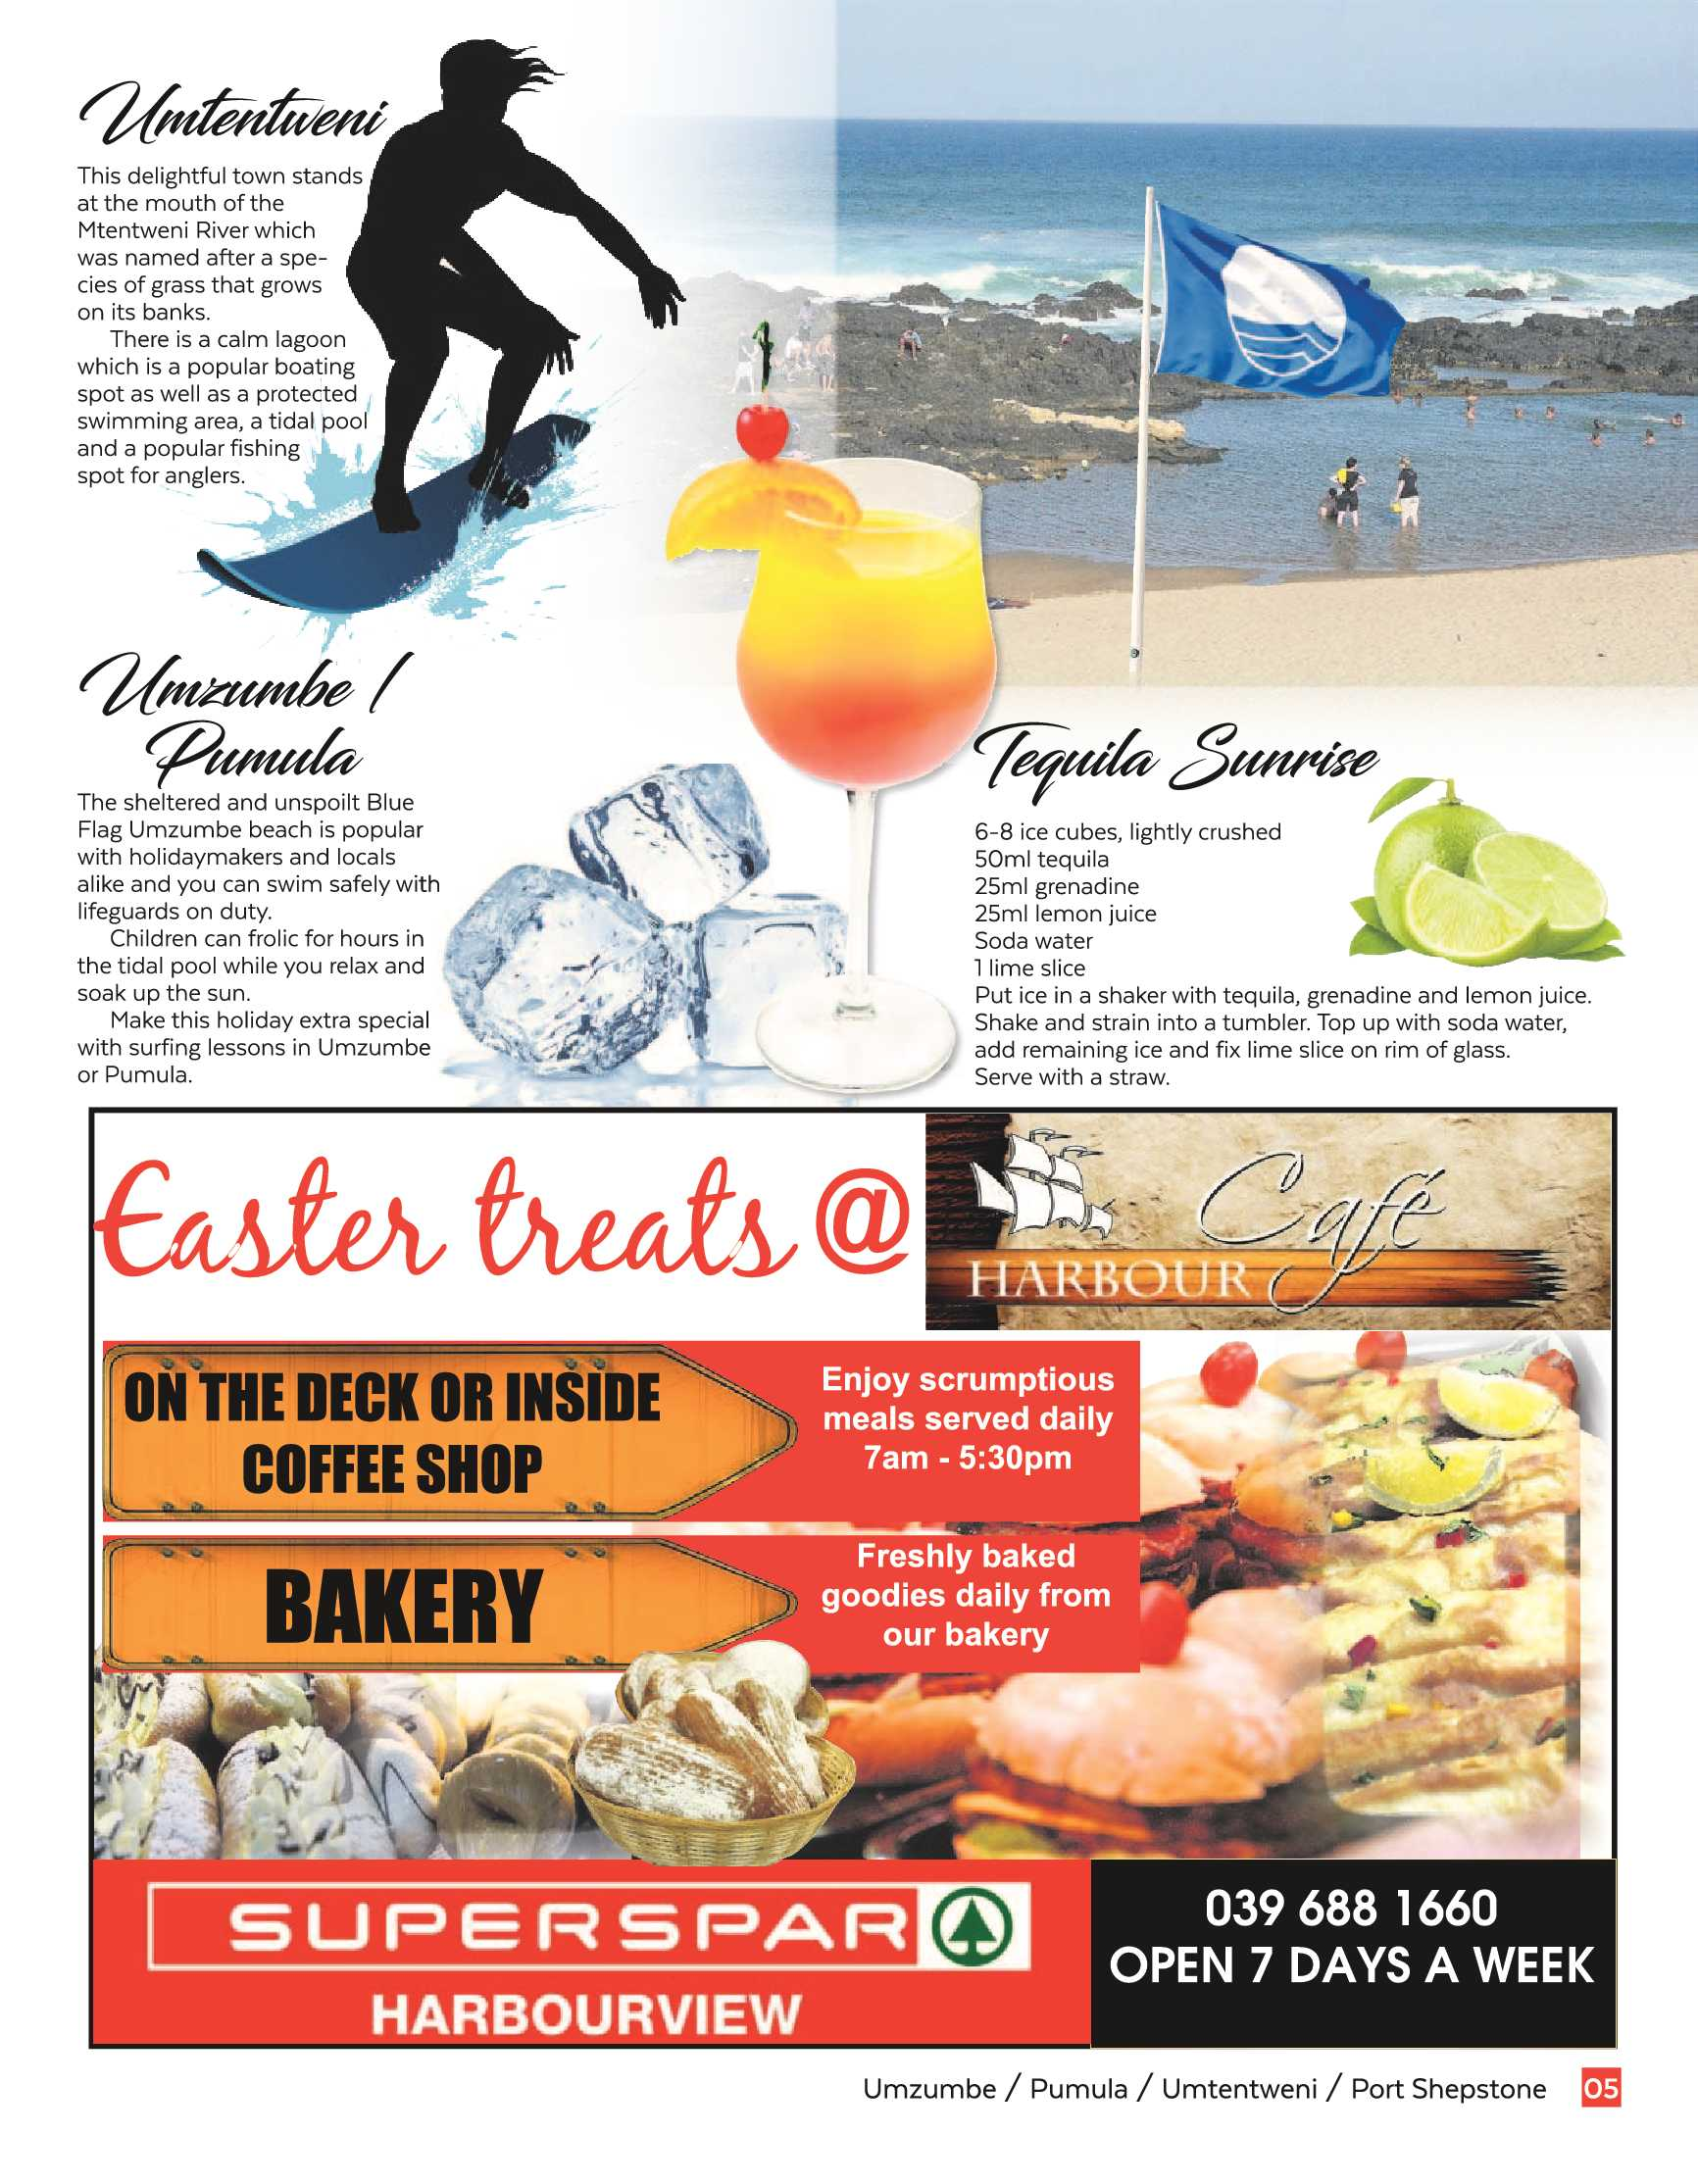 december-holiday-guide-epapers-page-5